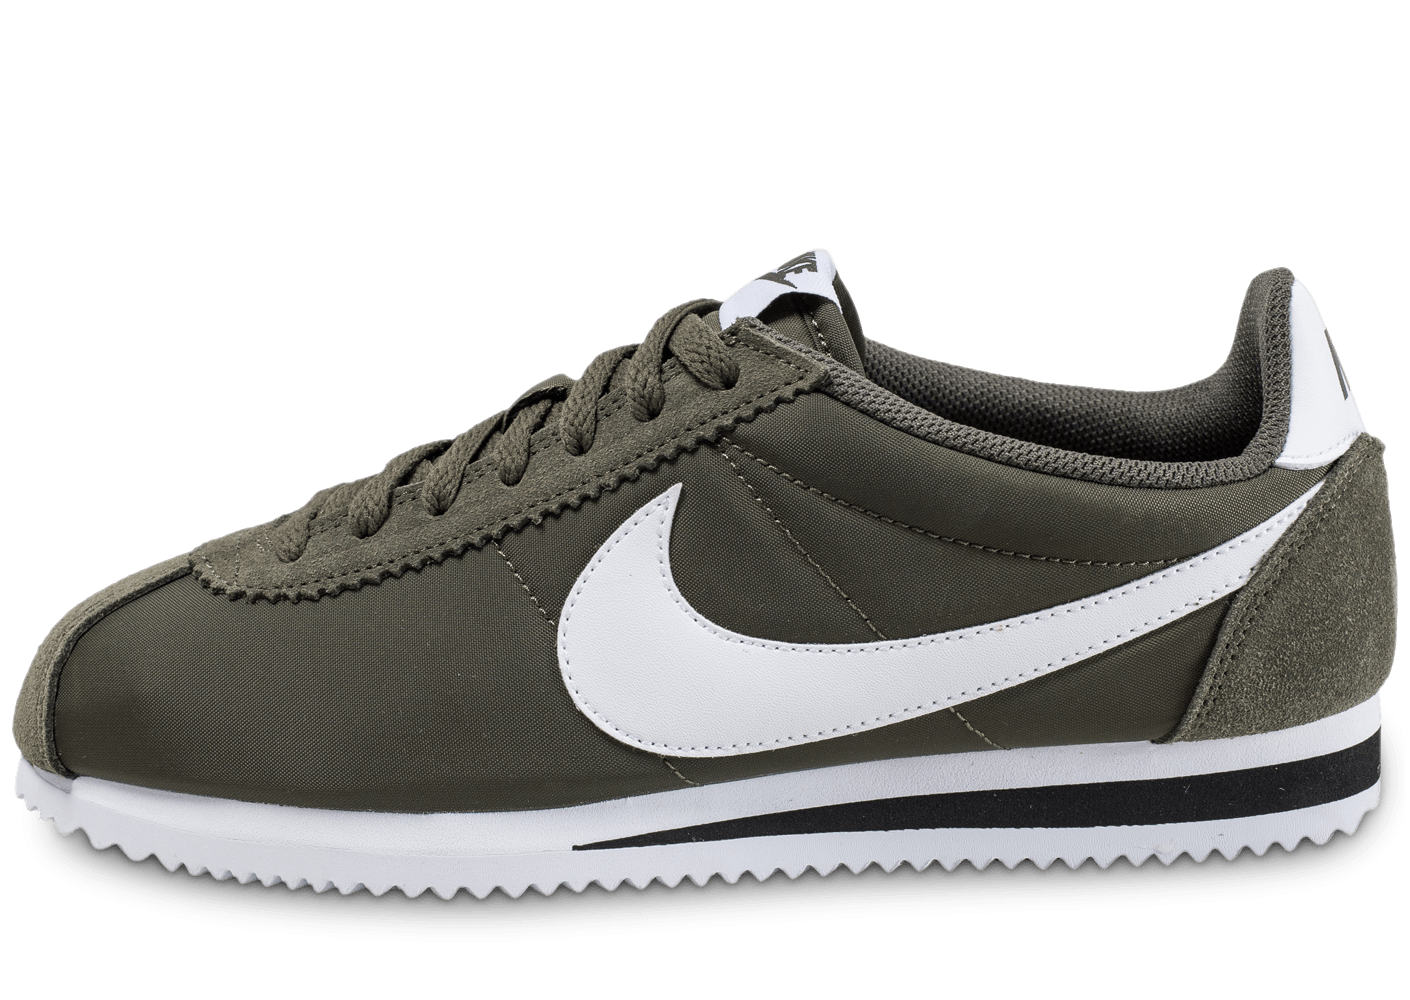 nike classic cortez nylon kaki cargo chaussures homme chausport. Black Bedroom Furniture Sets. Home Design Ideas